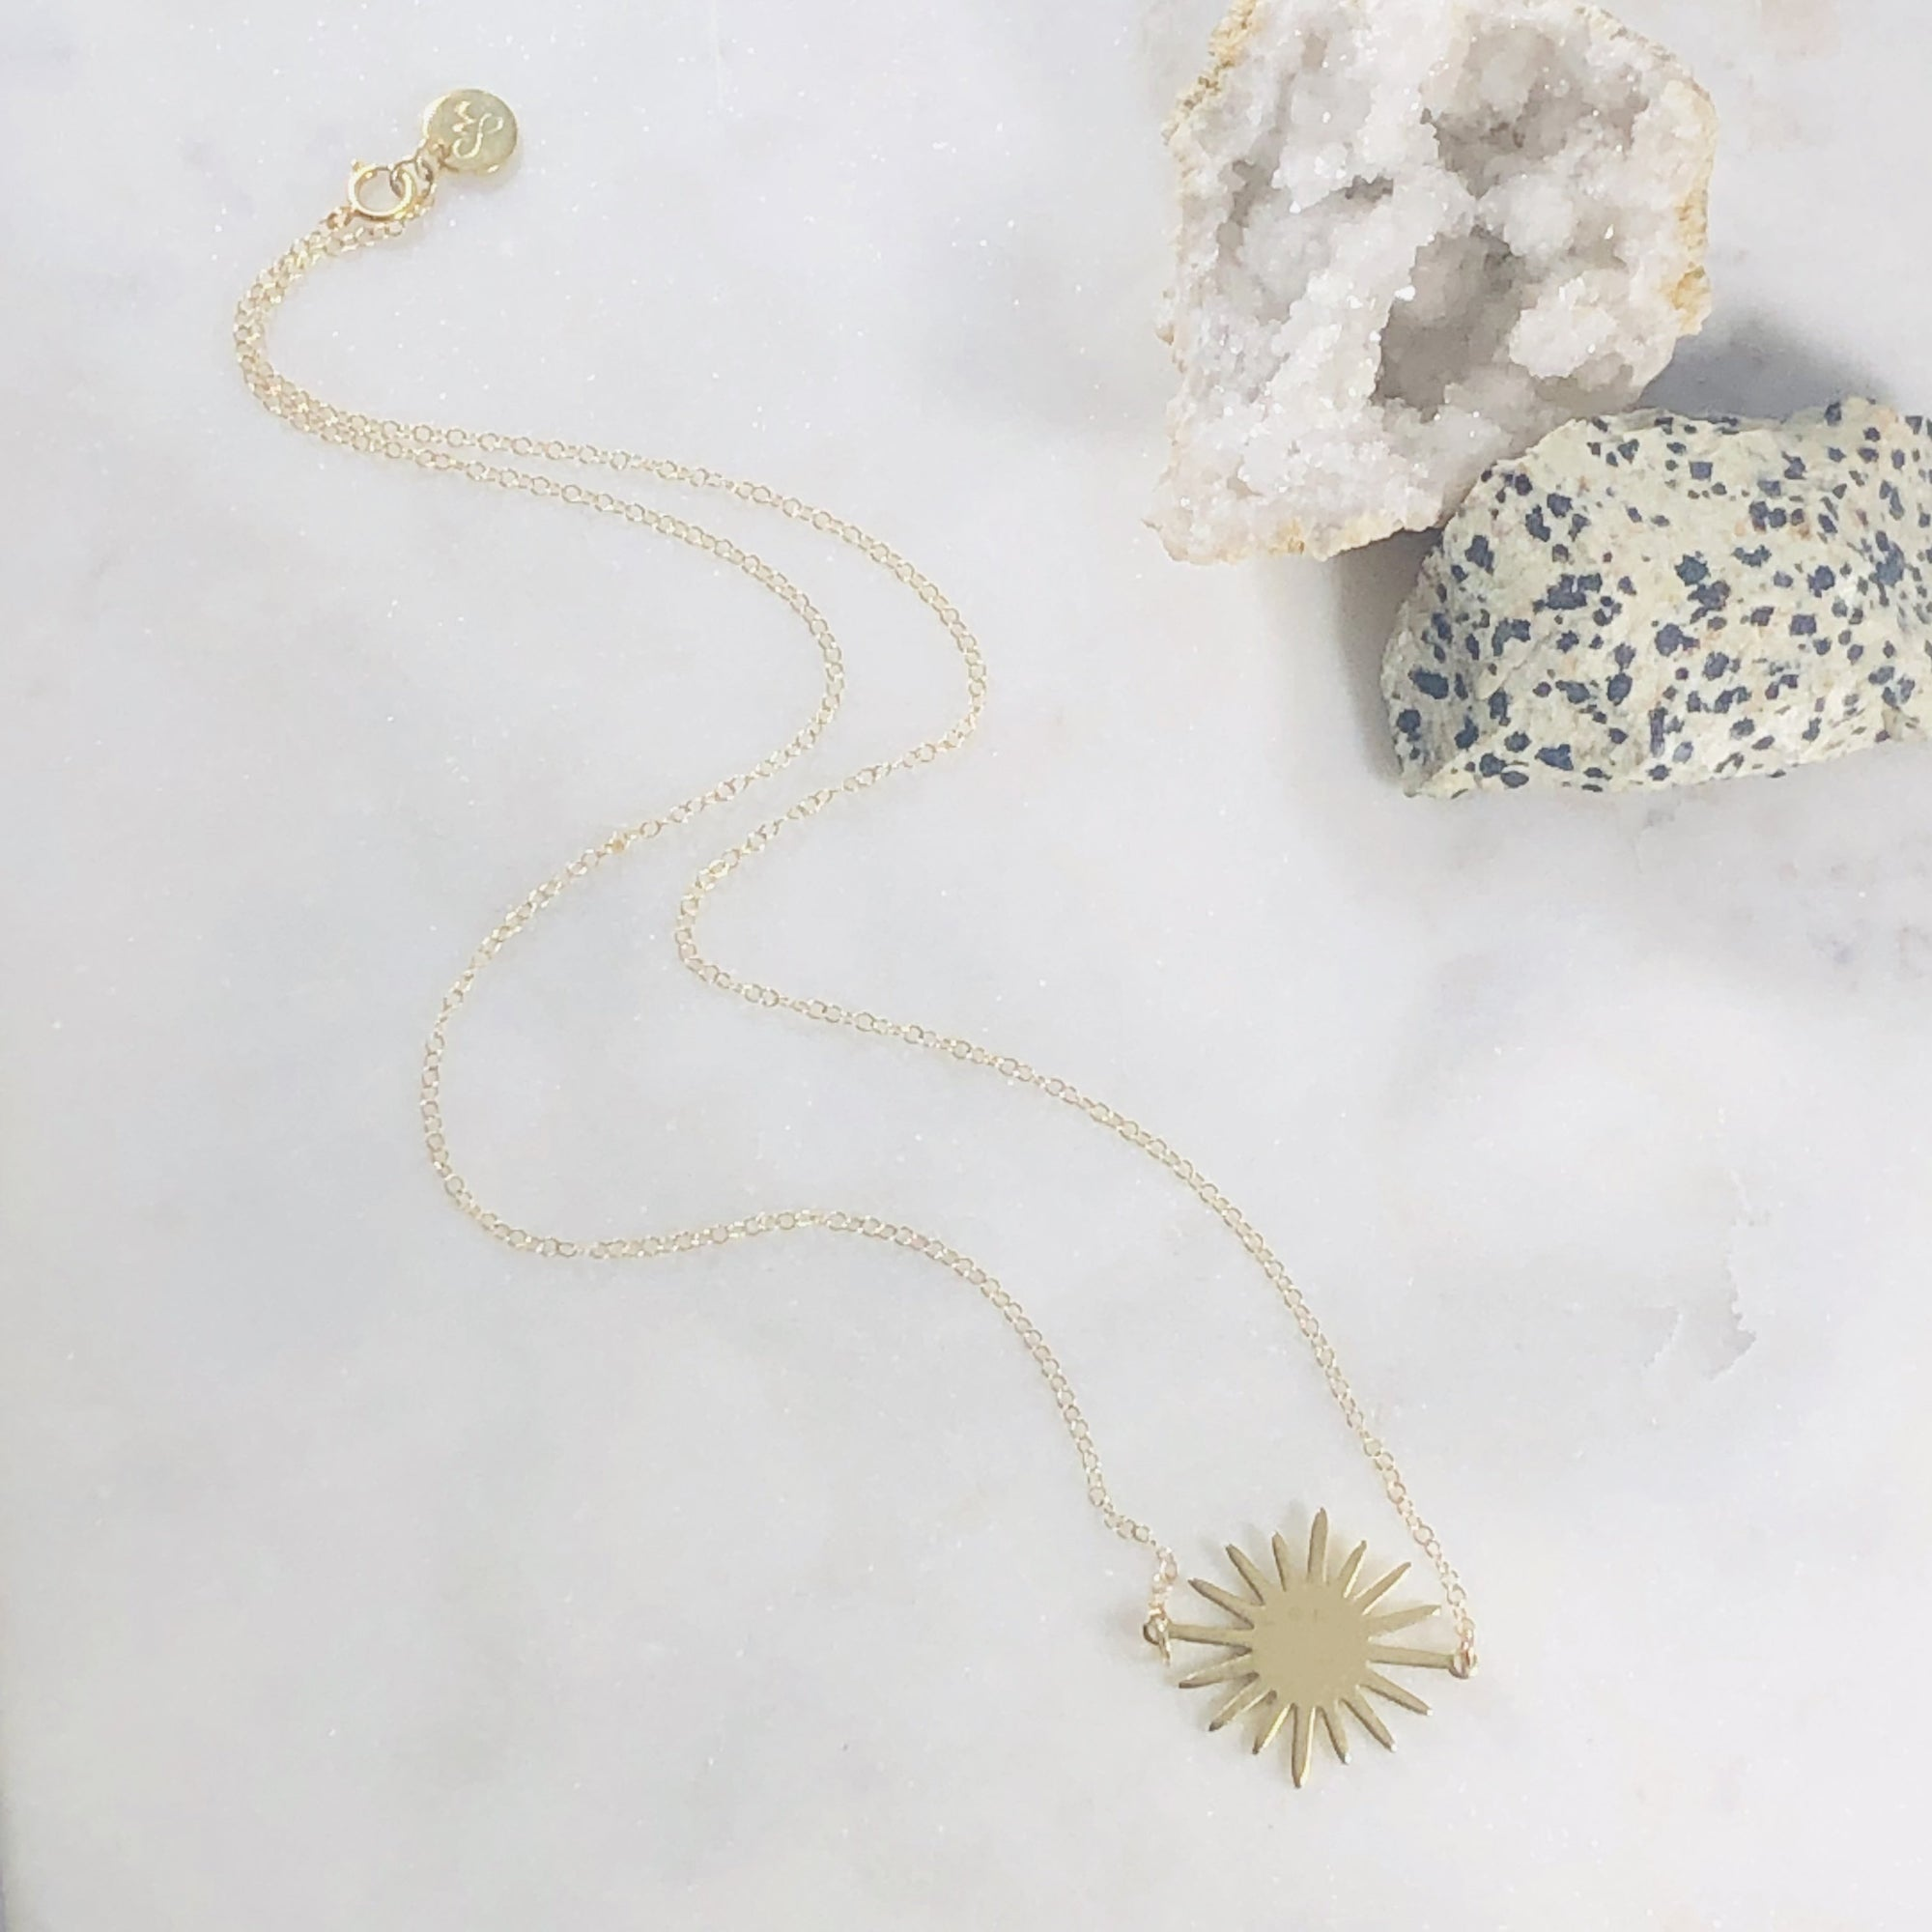 Handmade soleil necklace, jewelry with meaning